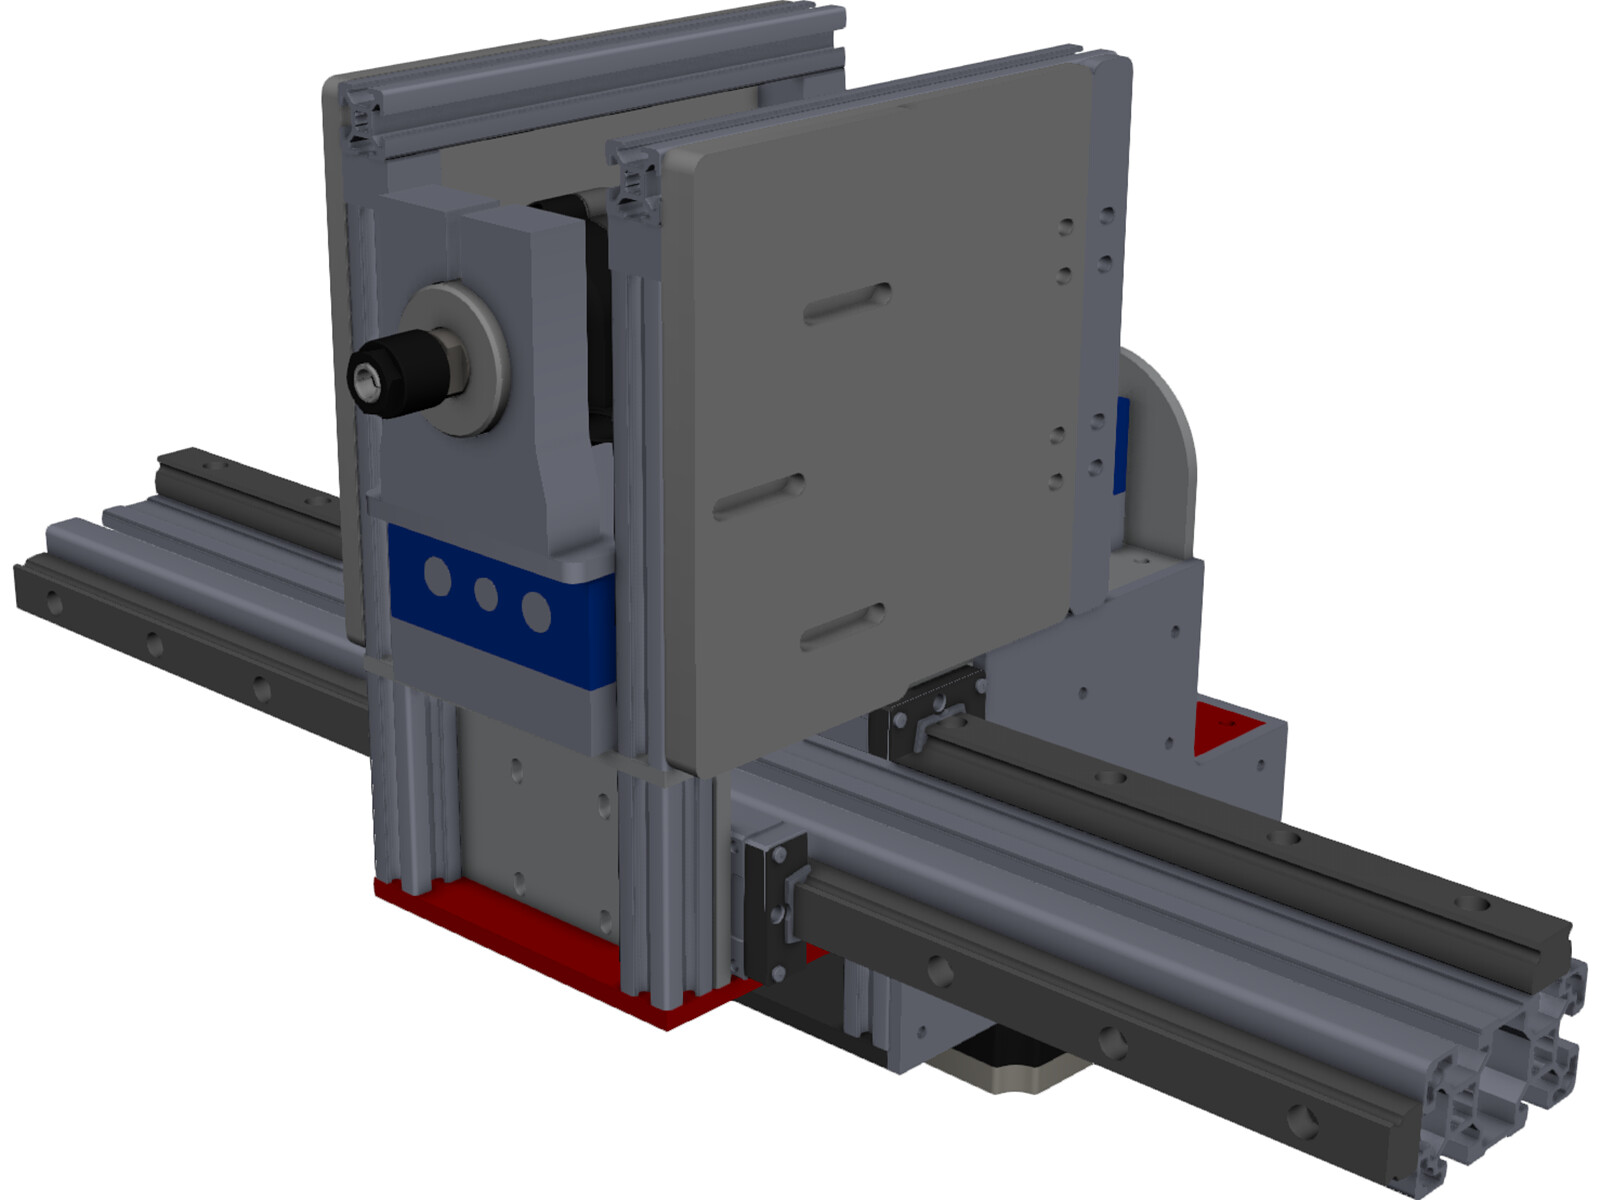 CNC Gantry Router Holder and Movement Construction 3D CAD Model